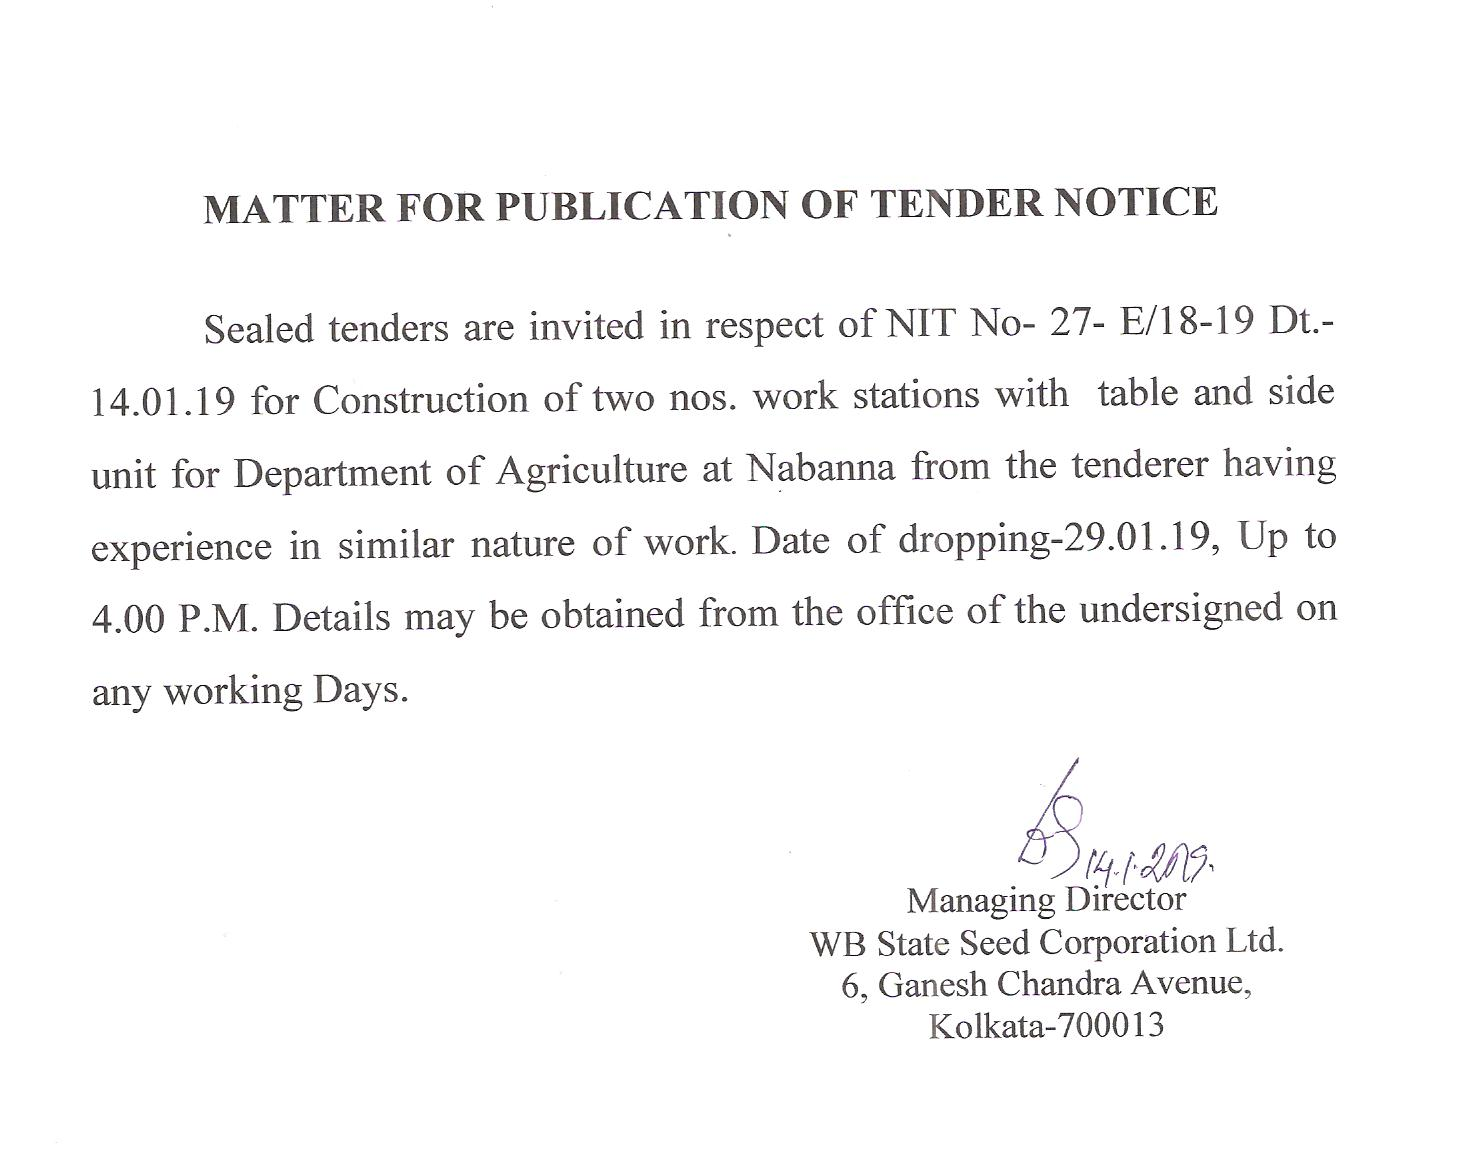 f74d218c19df4c publication of re- tender vide nit no. 22-E · NIT-28 (re-e Ten) · NIT-29  for Vermi and PROM · NIT-30 for PP Chem · e-Tender Notice (NIT-28